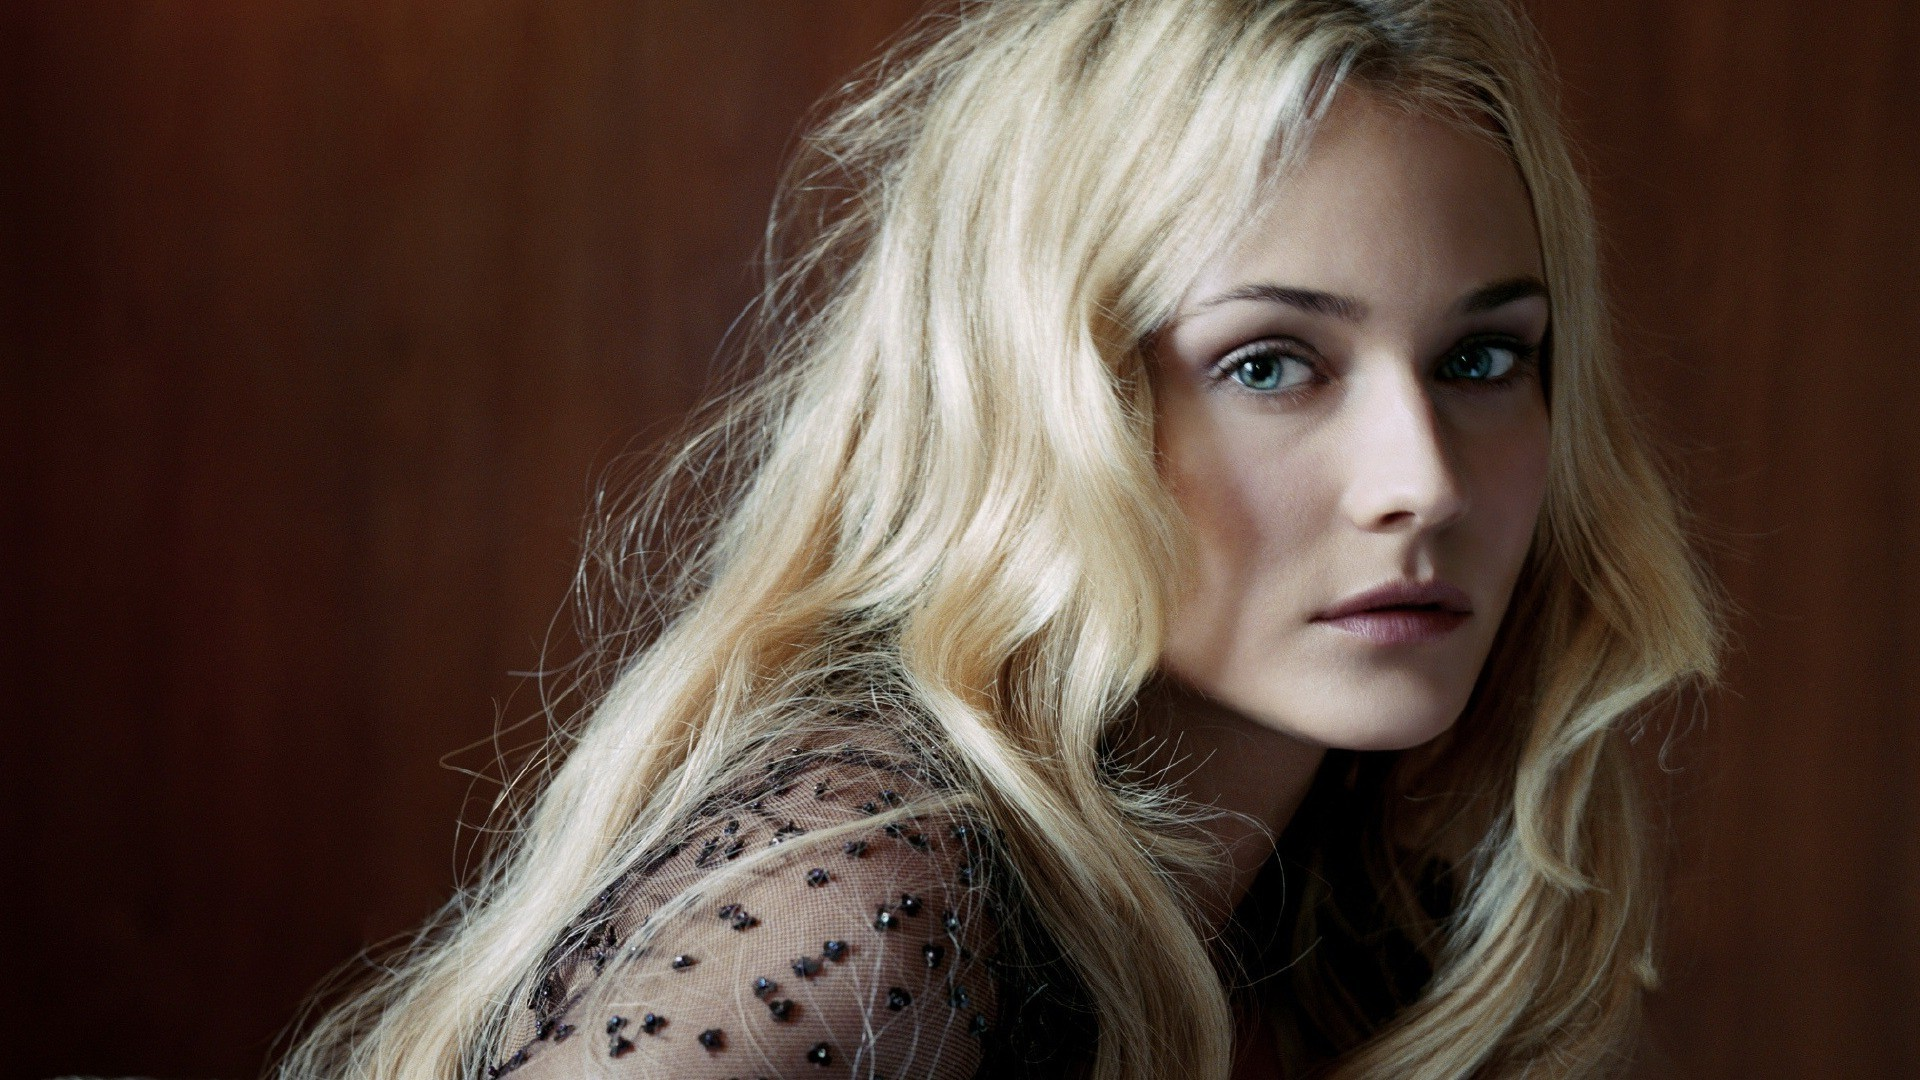 Diane Kruger Wallpapers High Resolution And Quality Download